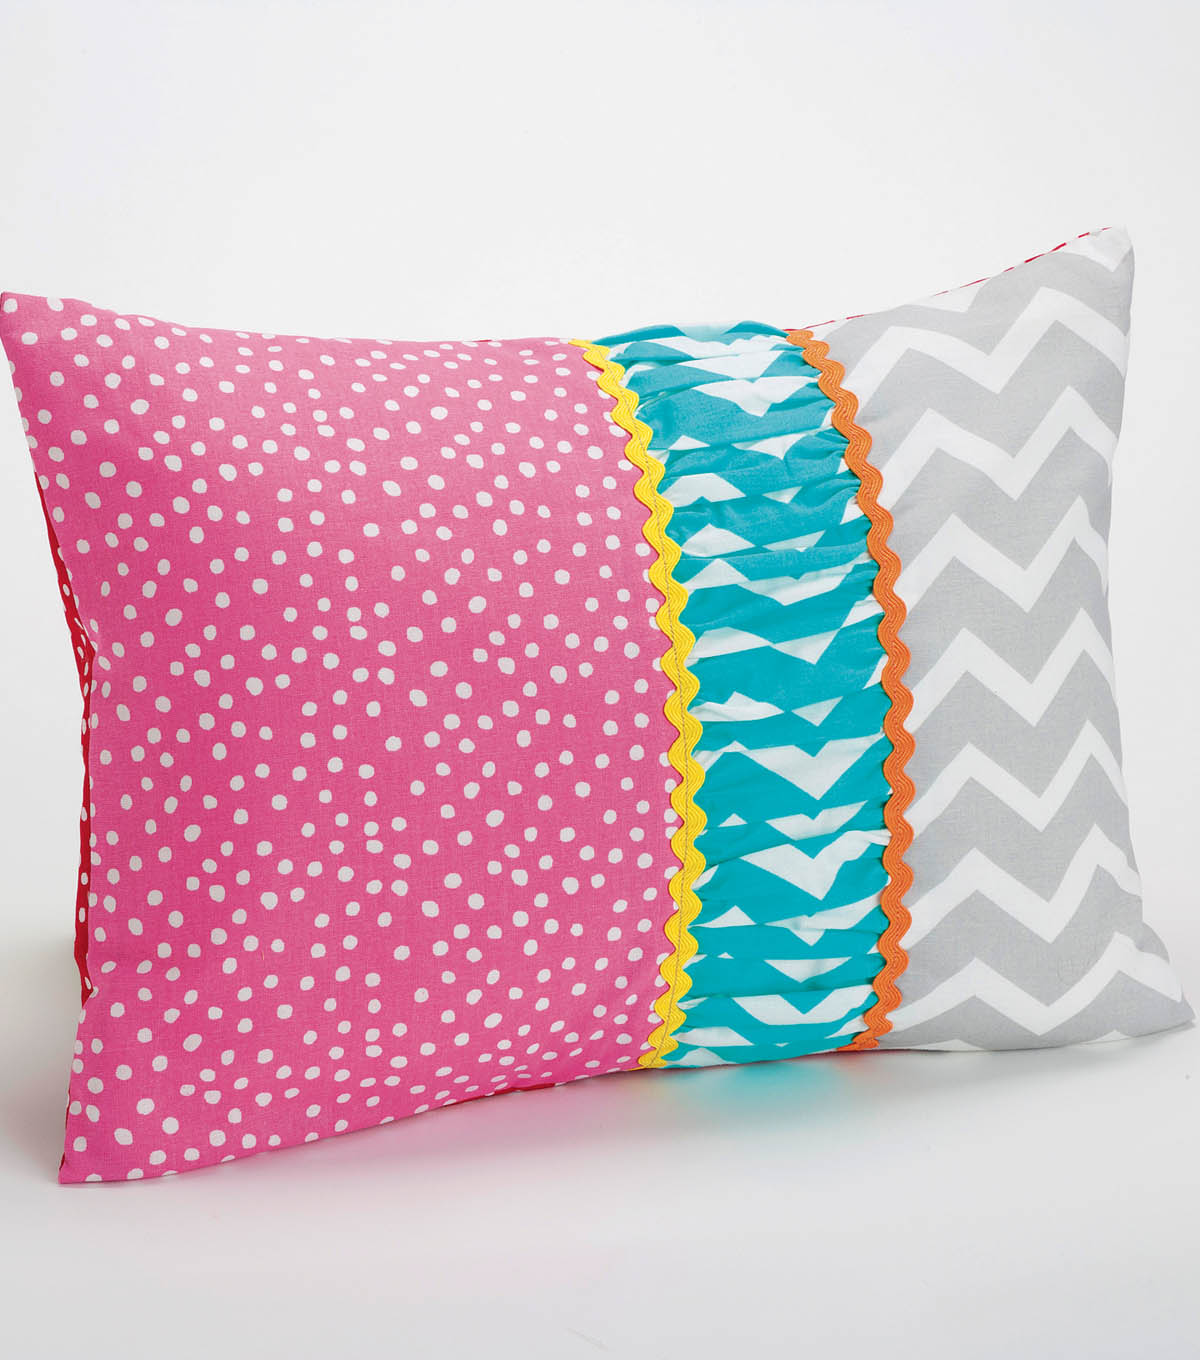 Slumber Party Fun Fabric Pillow